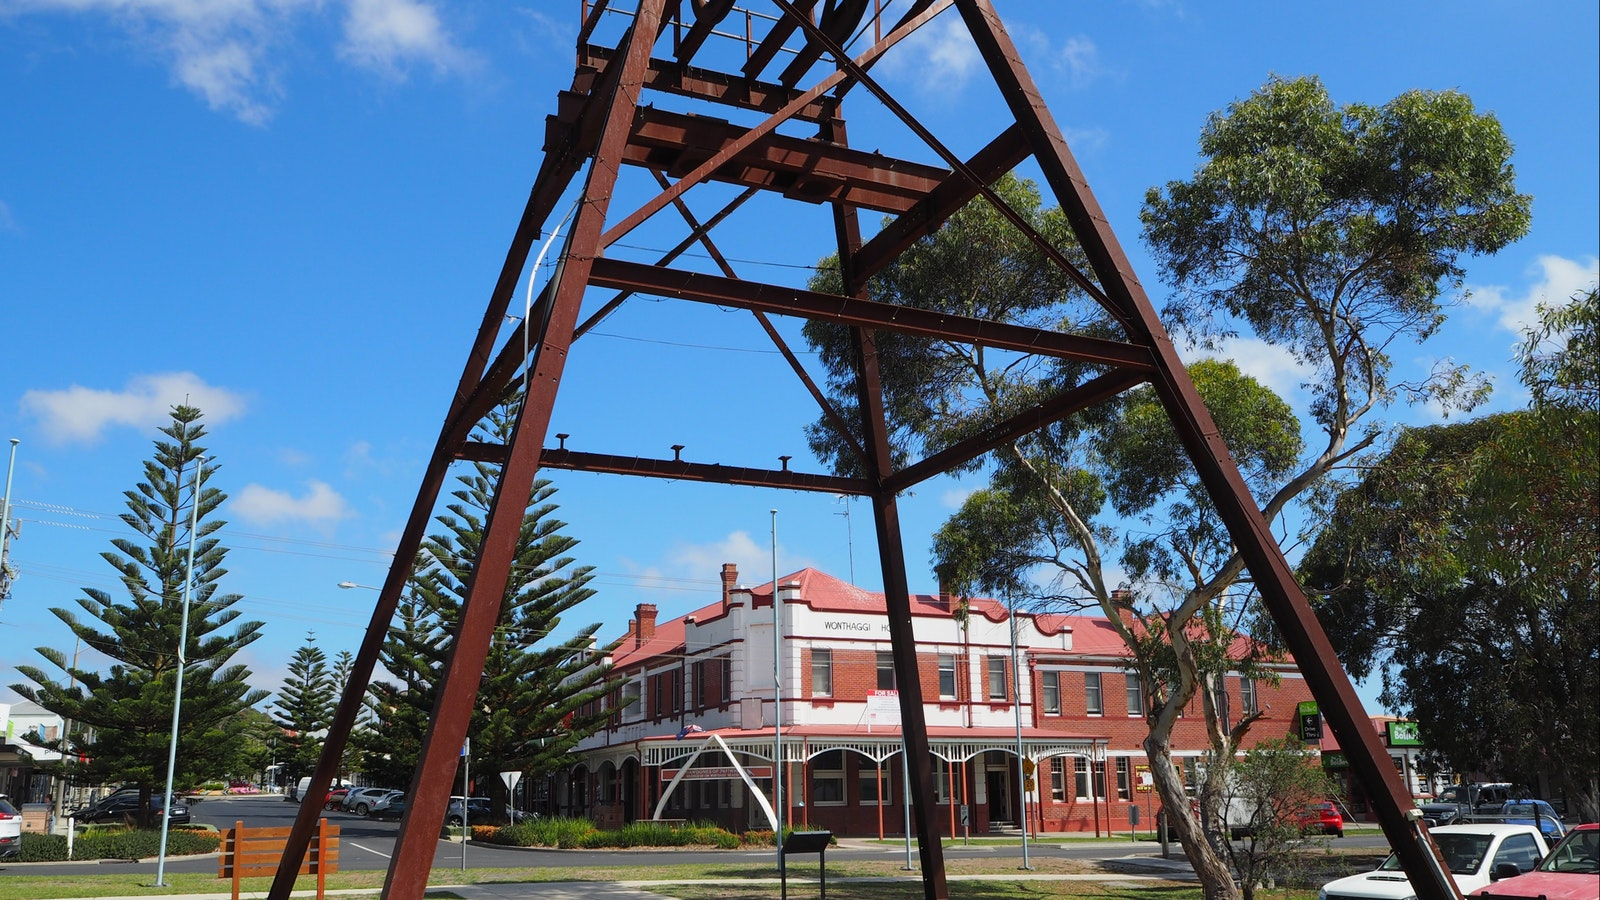 The poppet head just outside the historical museum Wonthaggi